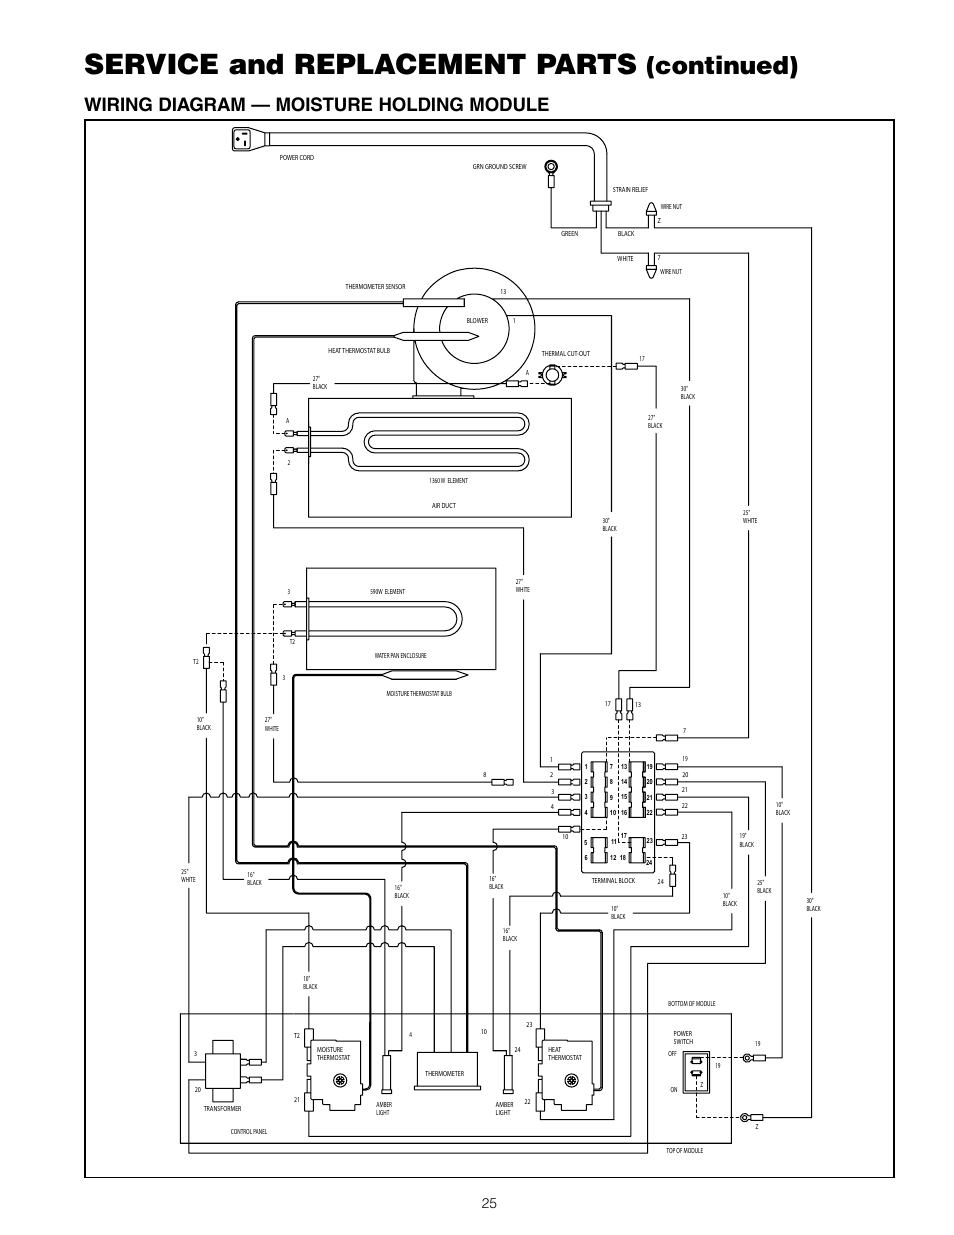 Service and replacement parts, Continued), Wiring diagram